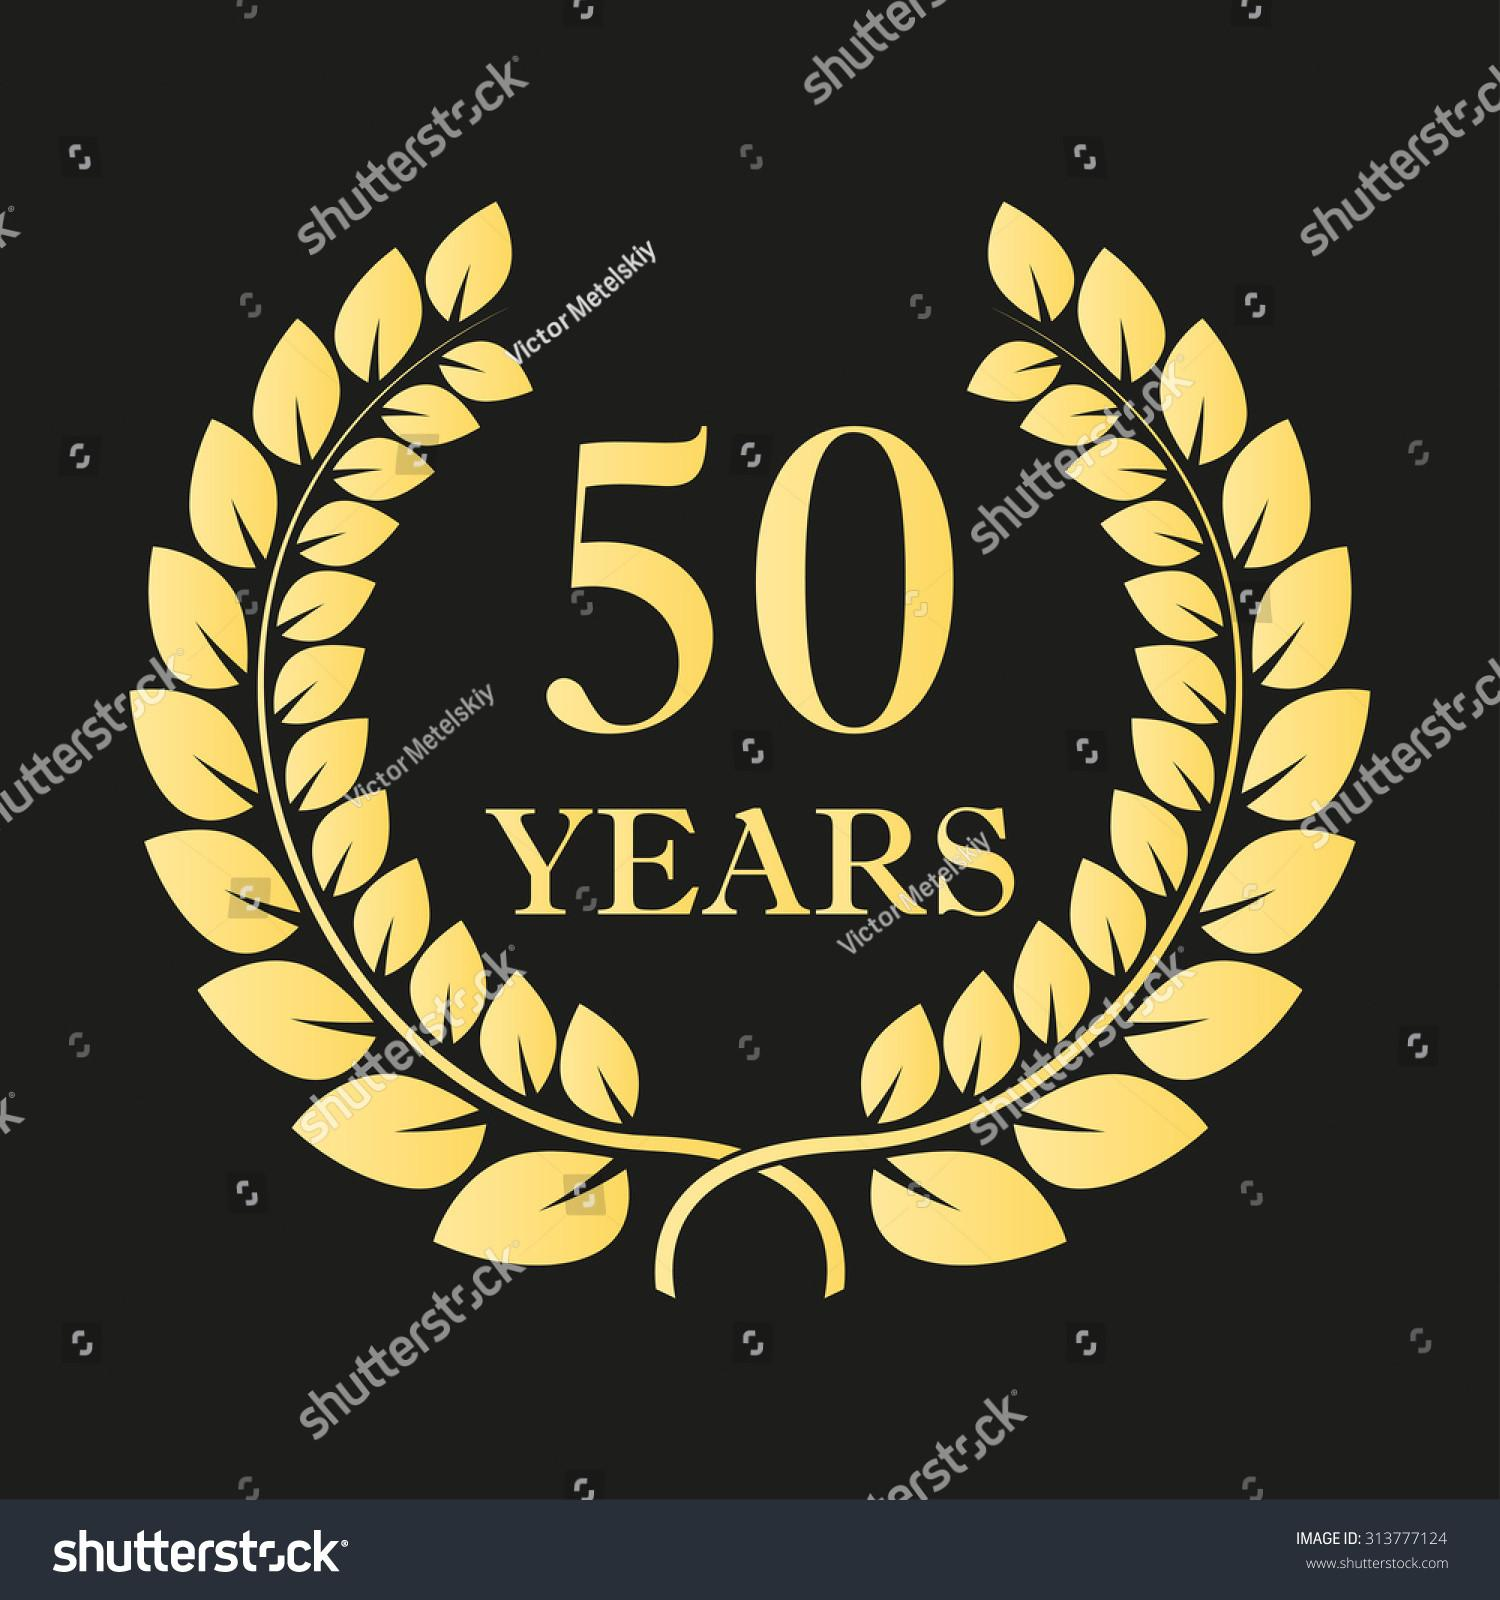 Years Anniversary Laurel Wreath Icon Sign Template